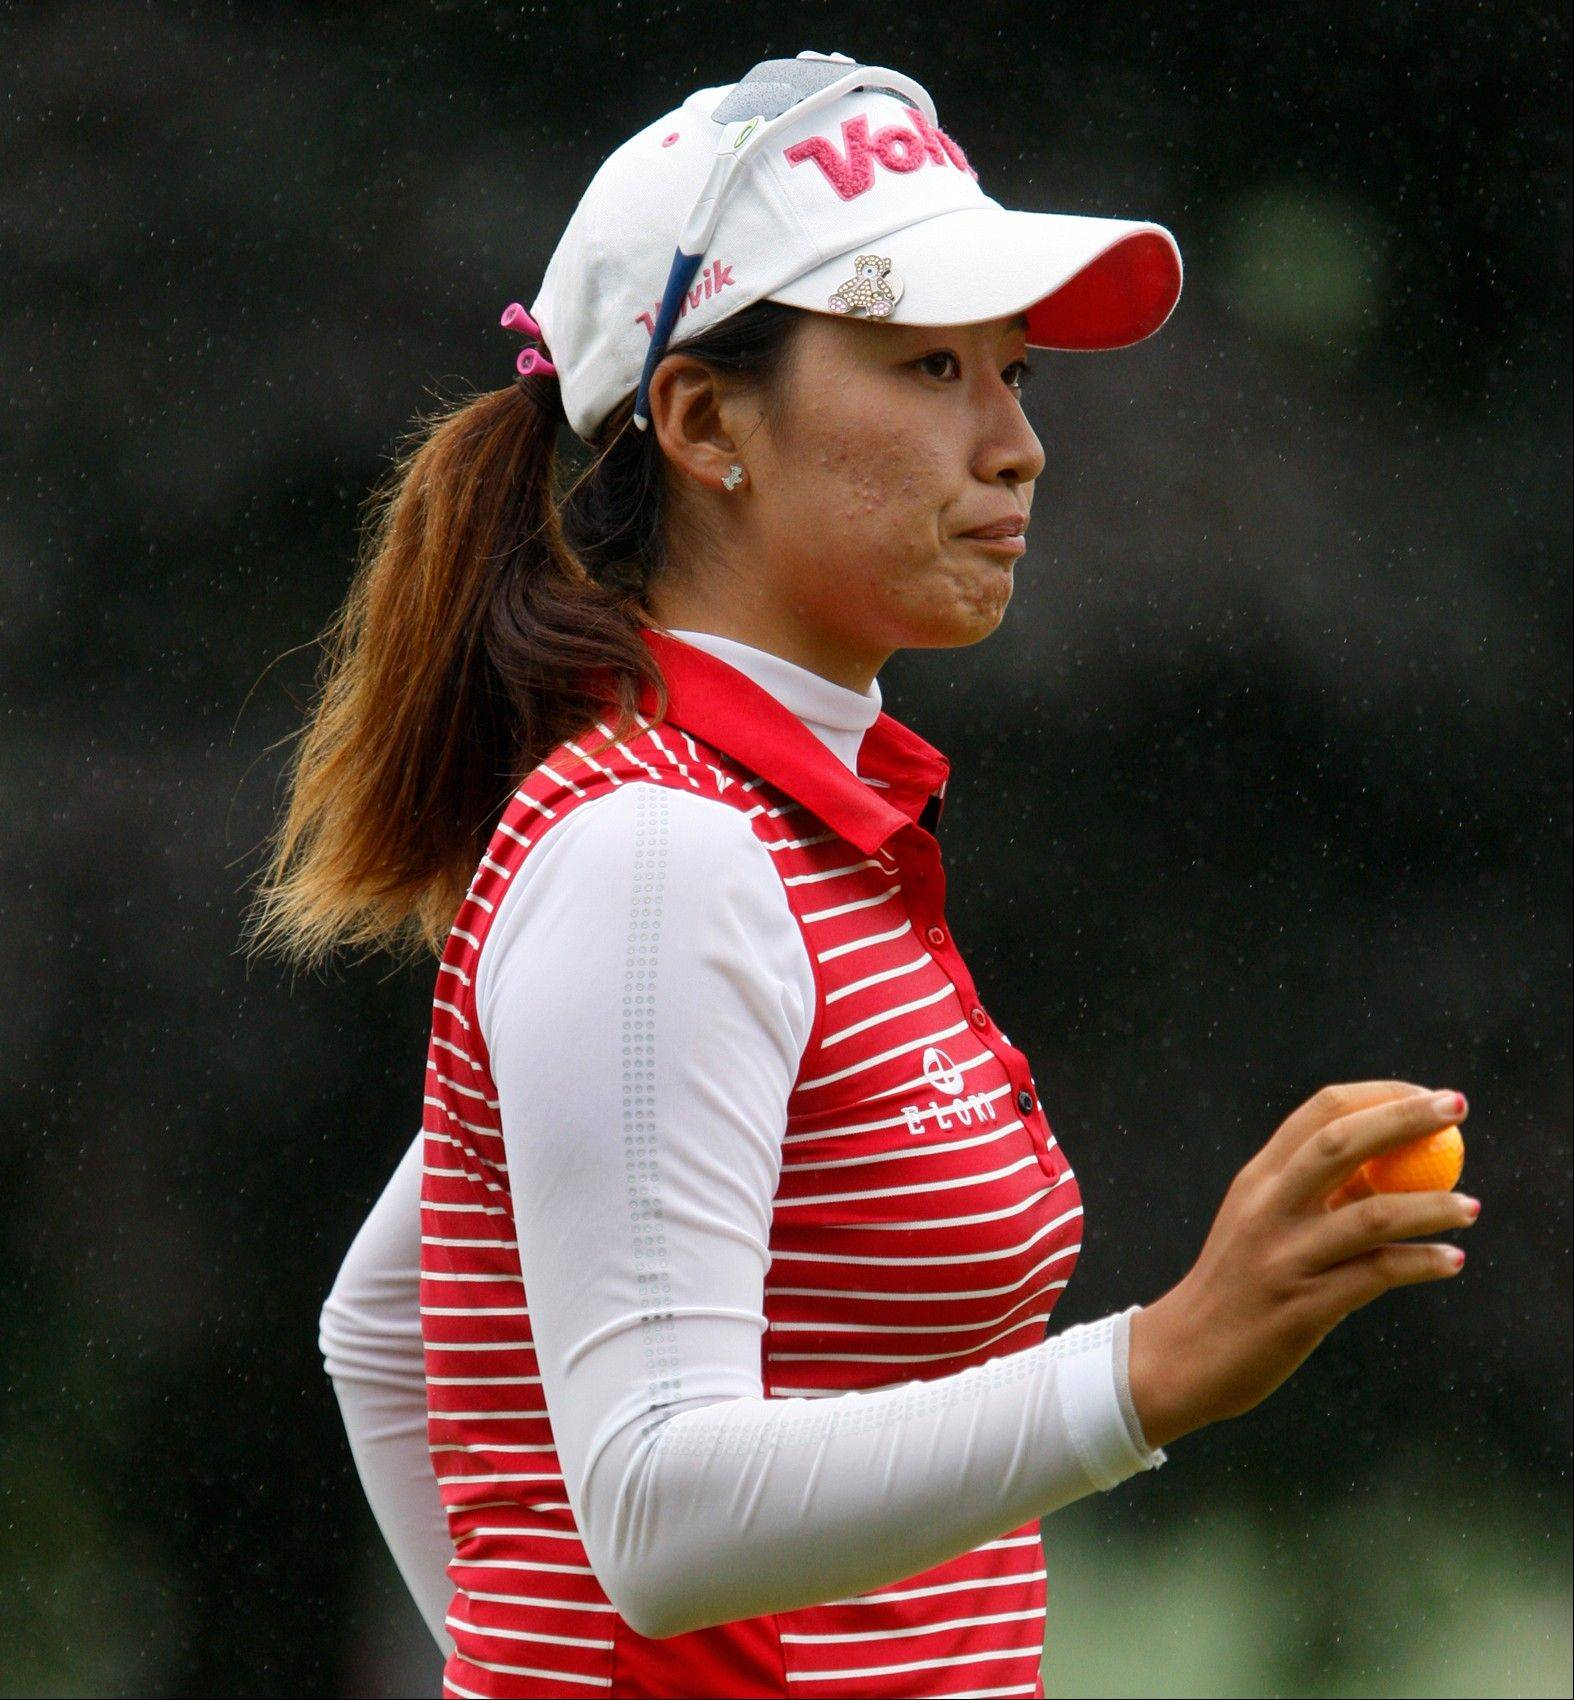 Chella Choi waves after her birdie on the 10th hole during the first round LPGA Championship golf championship, Friday, June 7, 20123, in Pittsford, N.Y. (AP Photo/Democrat & Chronicle, Shawn Dowd) MAGS OUT; NO SALES